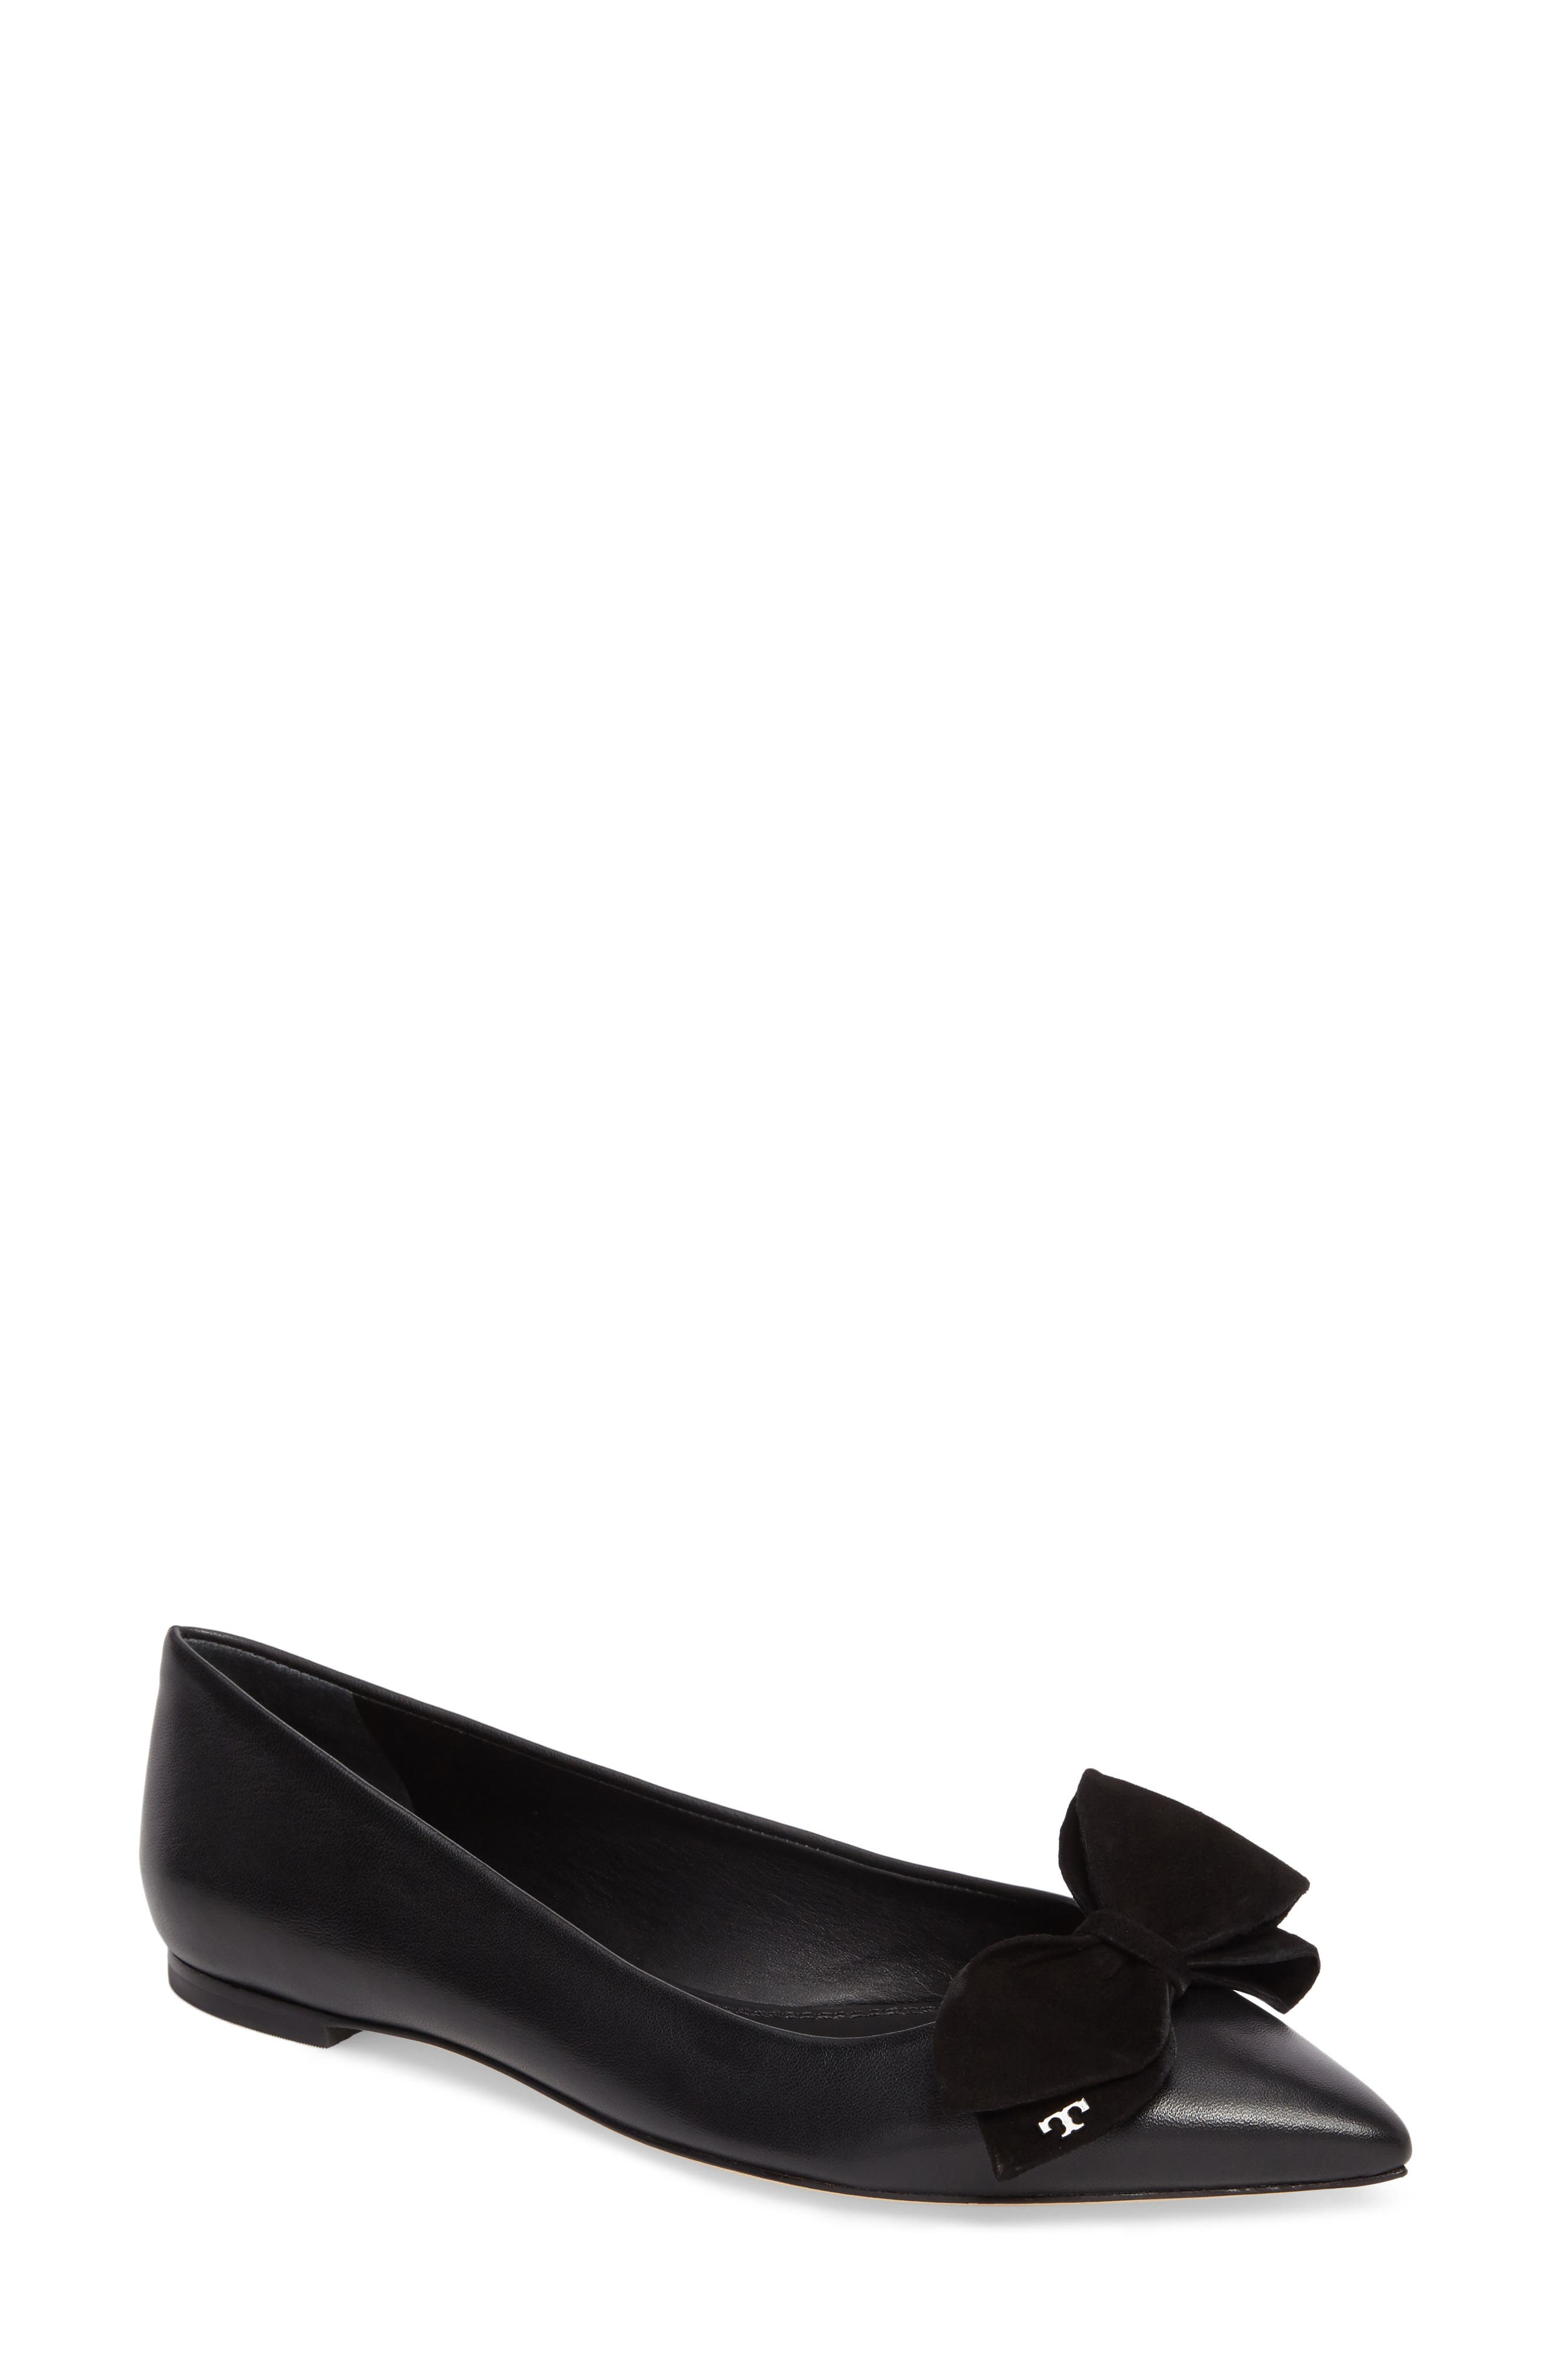 Rosalind Bow Pointy Toe Flat,                         Main,                         color, BLACK LEATHER